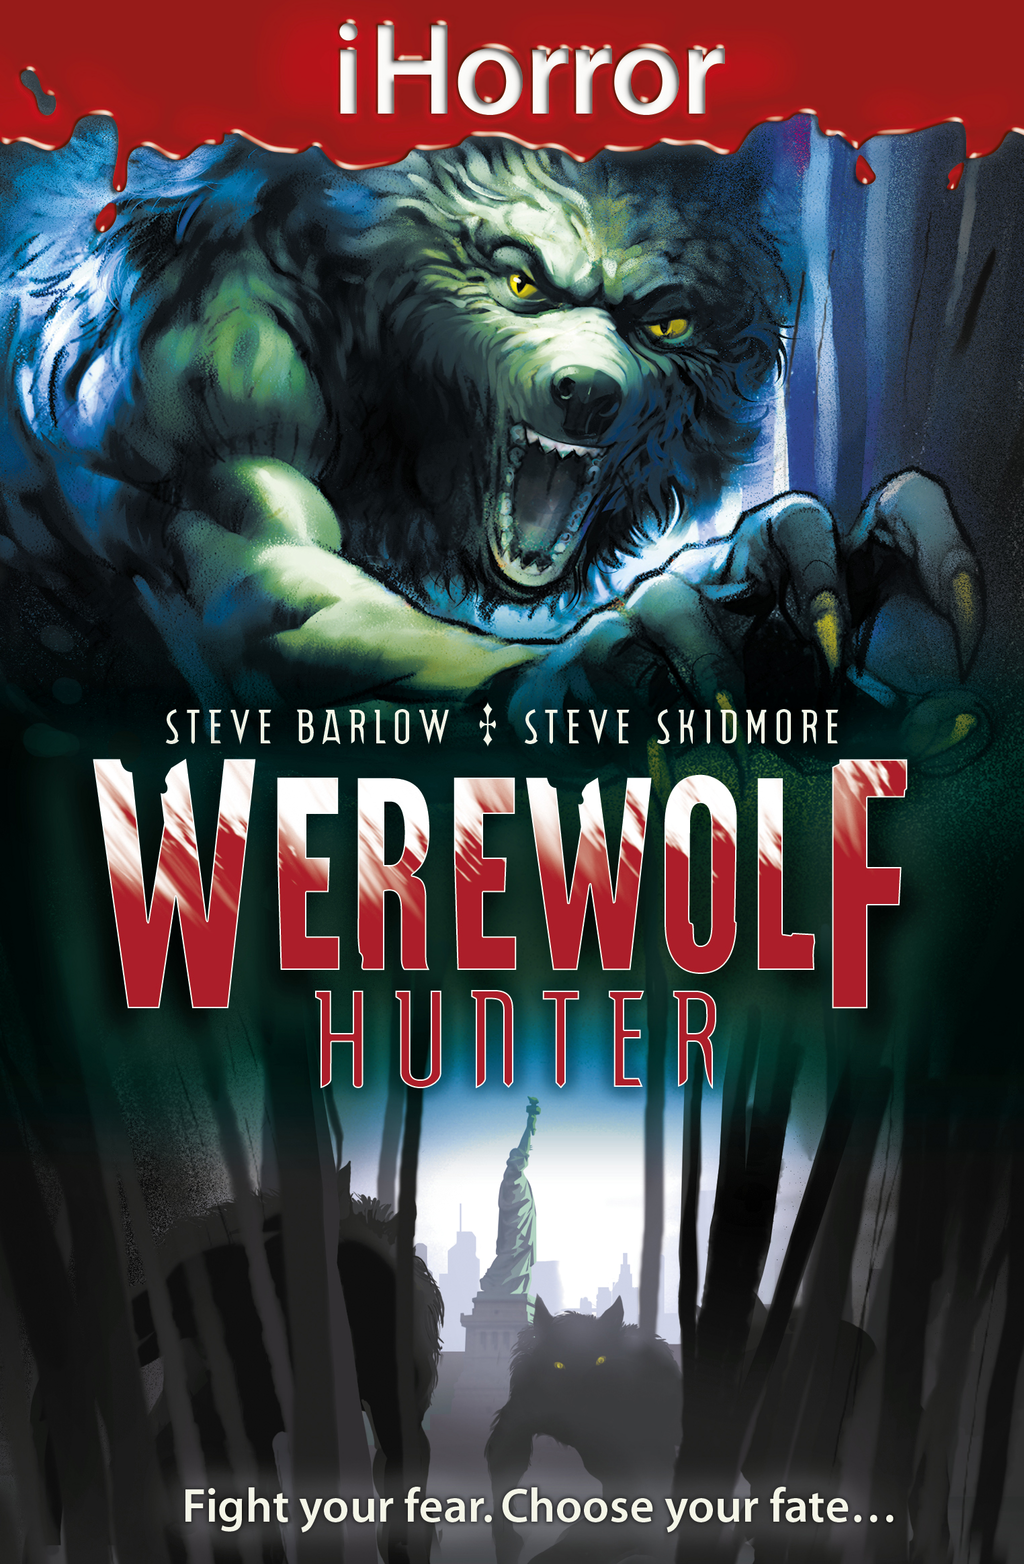 iHorror: Werewolf Hunter